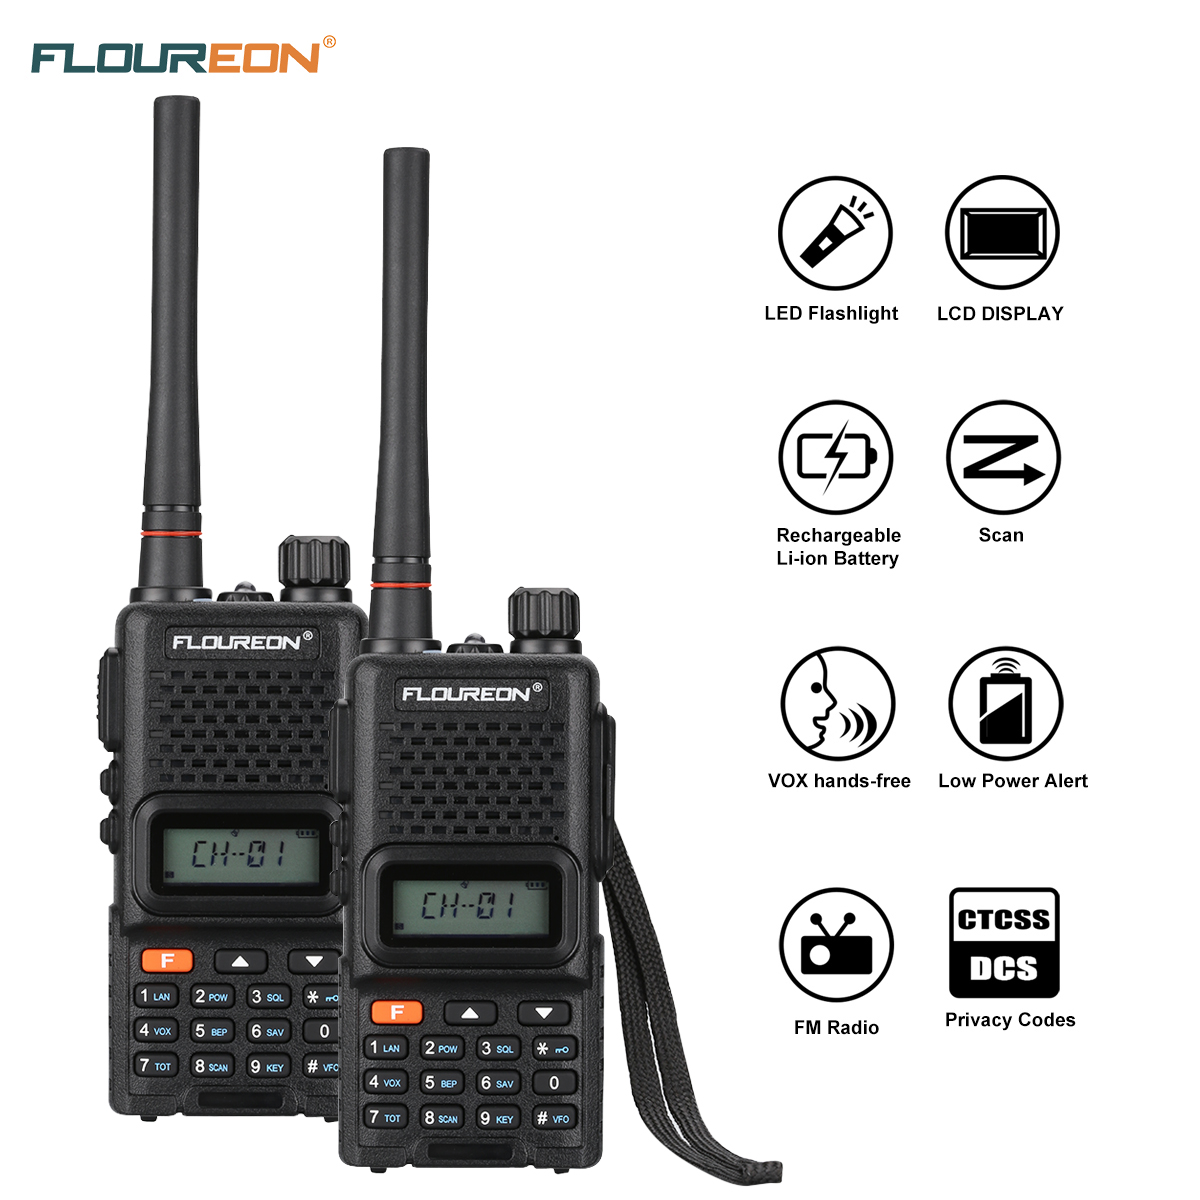 FLOUREON 2 Pack Rechargeable Handheld Walkie Talkie, 22 Channel Two Way Radio UHF 400-470MHz with LED Light FM Radio Function for Field Survival Biking and Hiking, Black